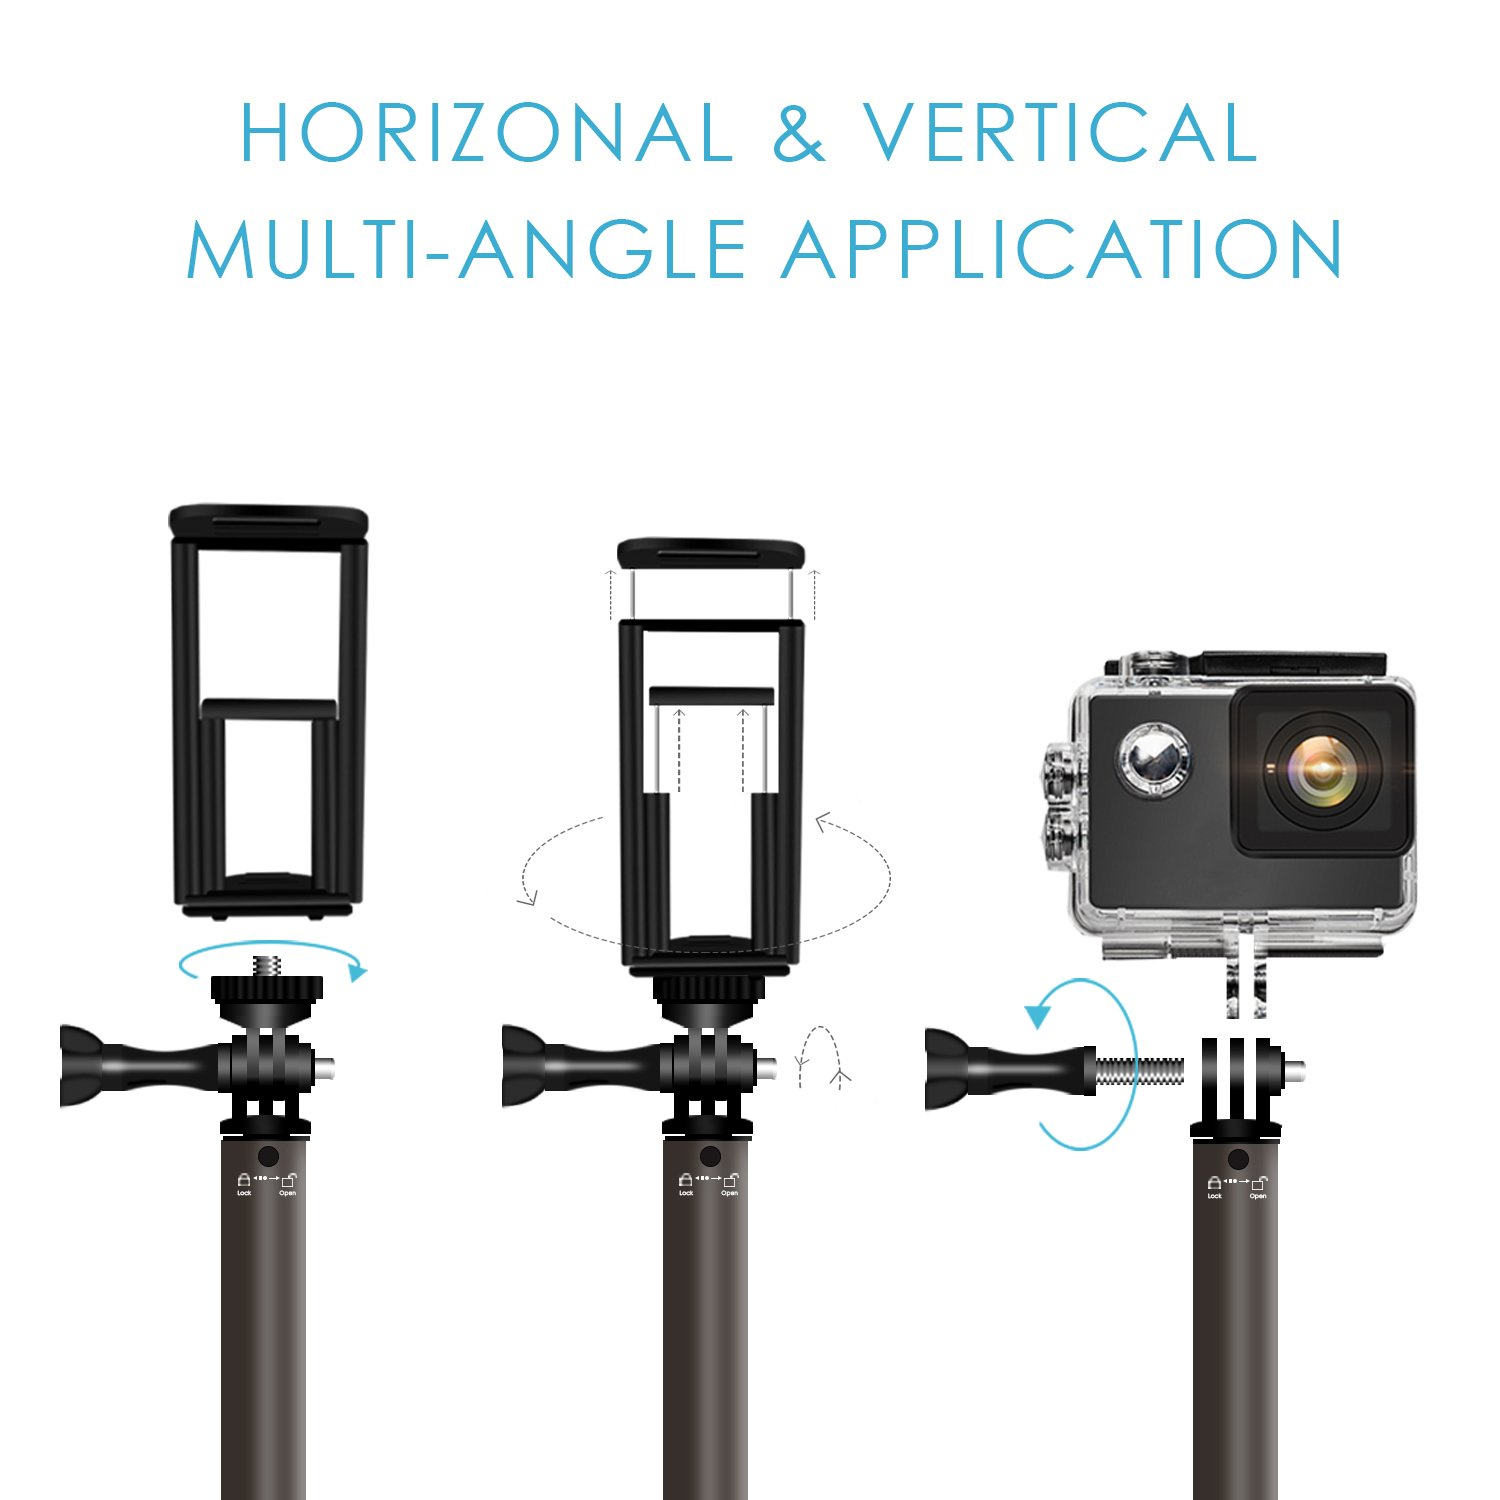 Bluetooth Selfie Stick with Tripod, Remote 59Inch MFW Extendable Monopod with Tripod Stand for iPhone X/8/7/6/Plus,Tablet,Samsung S7/S8,Android,GoPro Cameras by MFW (Image #5)